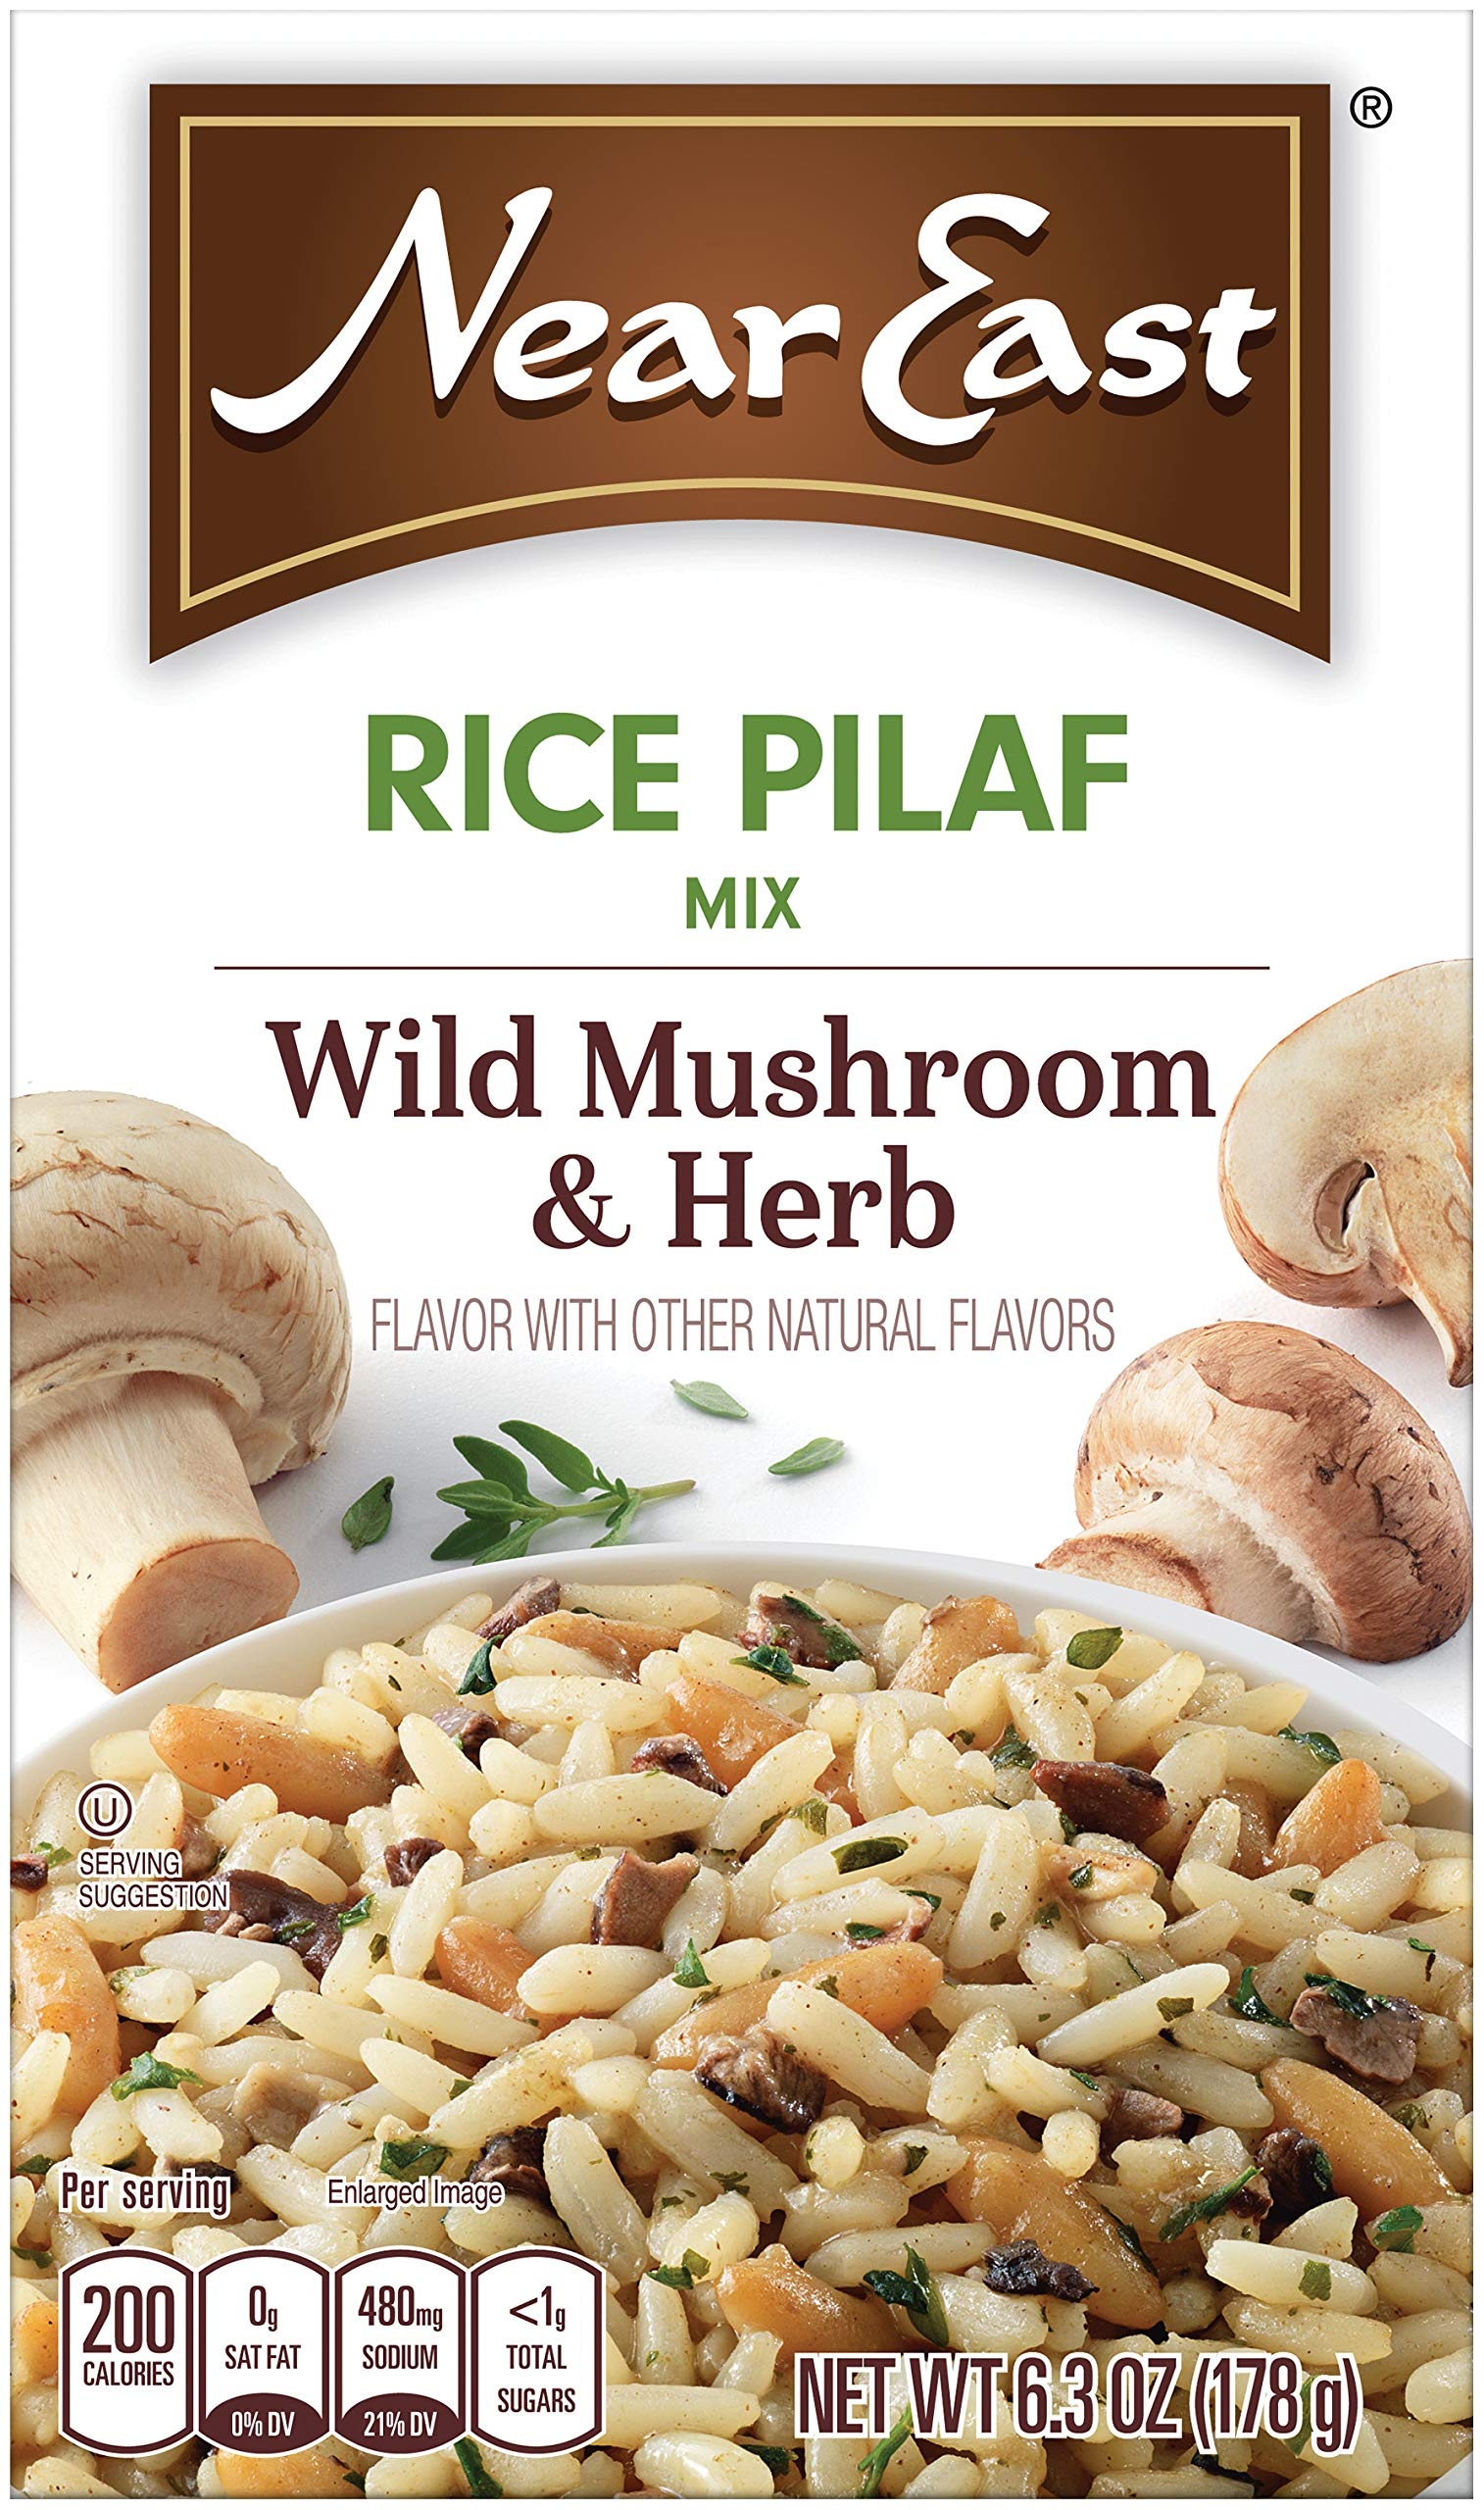 Near East Wild Mushrooms & Herbs Rice Pilaf Mix 6.3oz (Pack of 12 Boxes) by Quaker